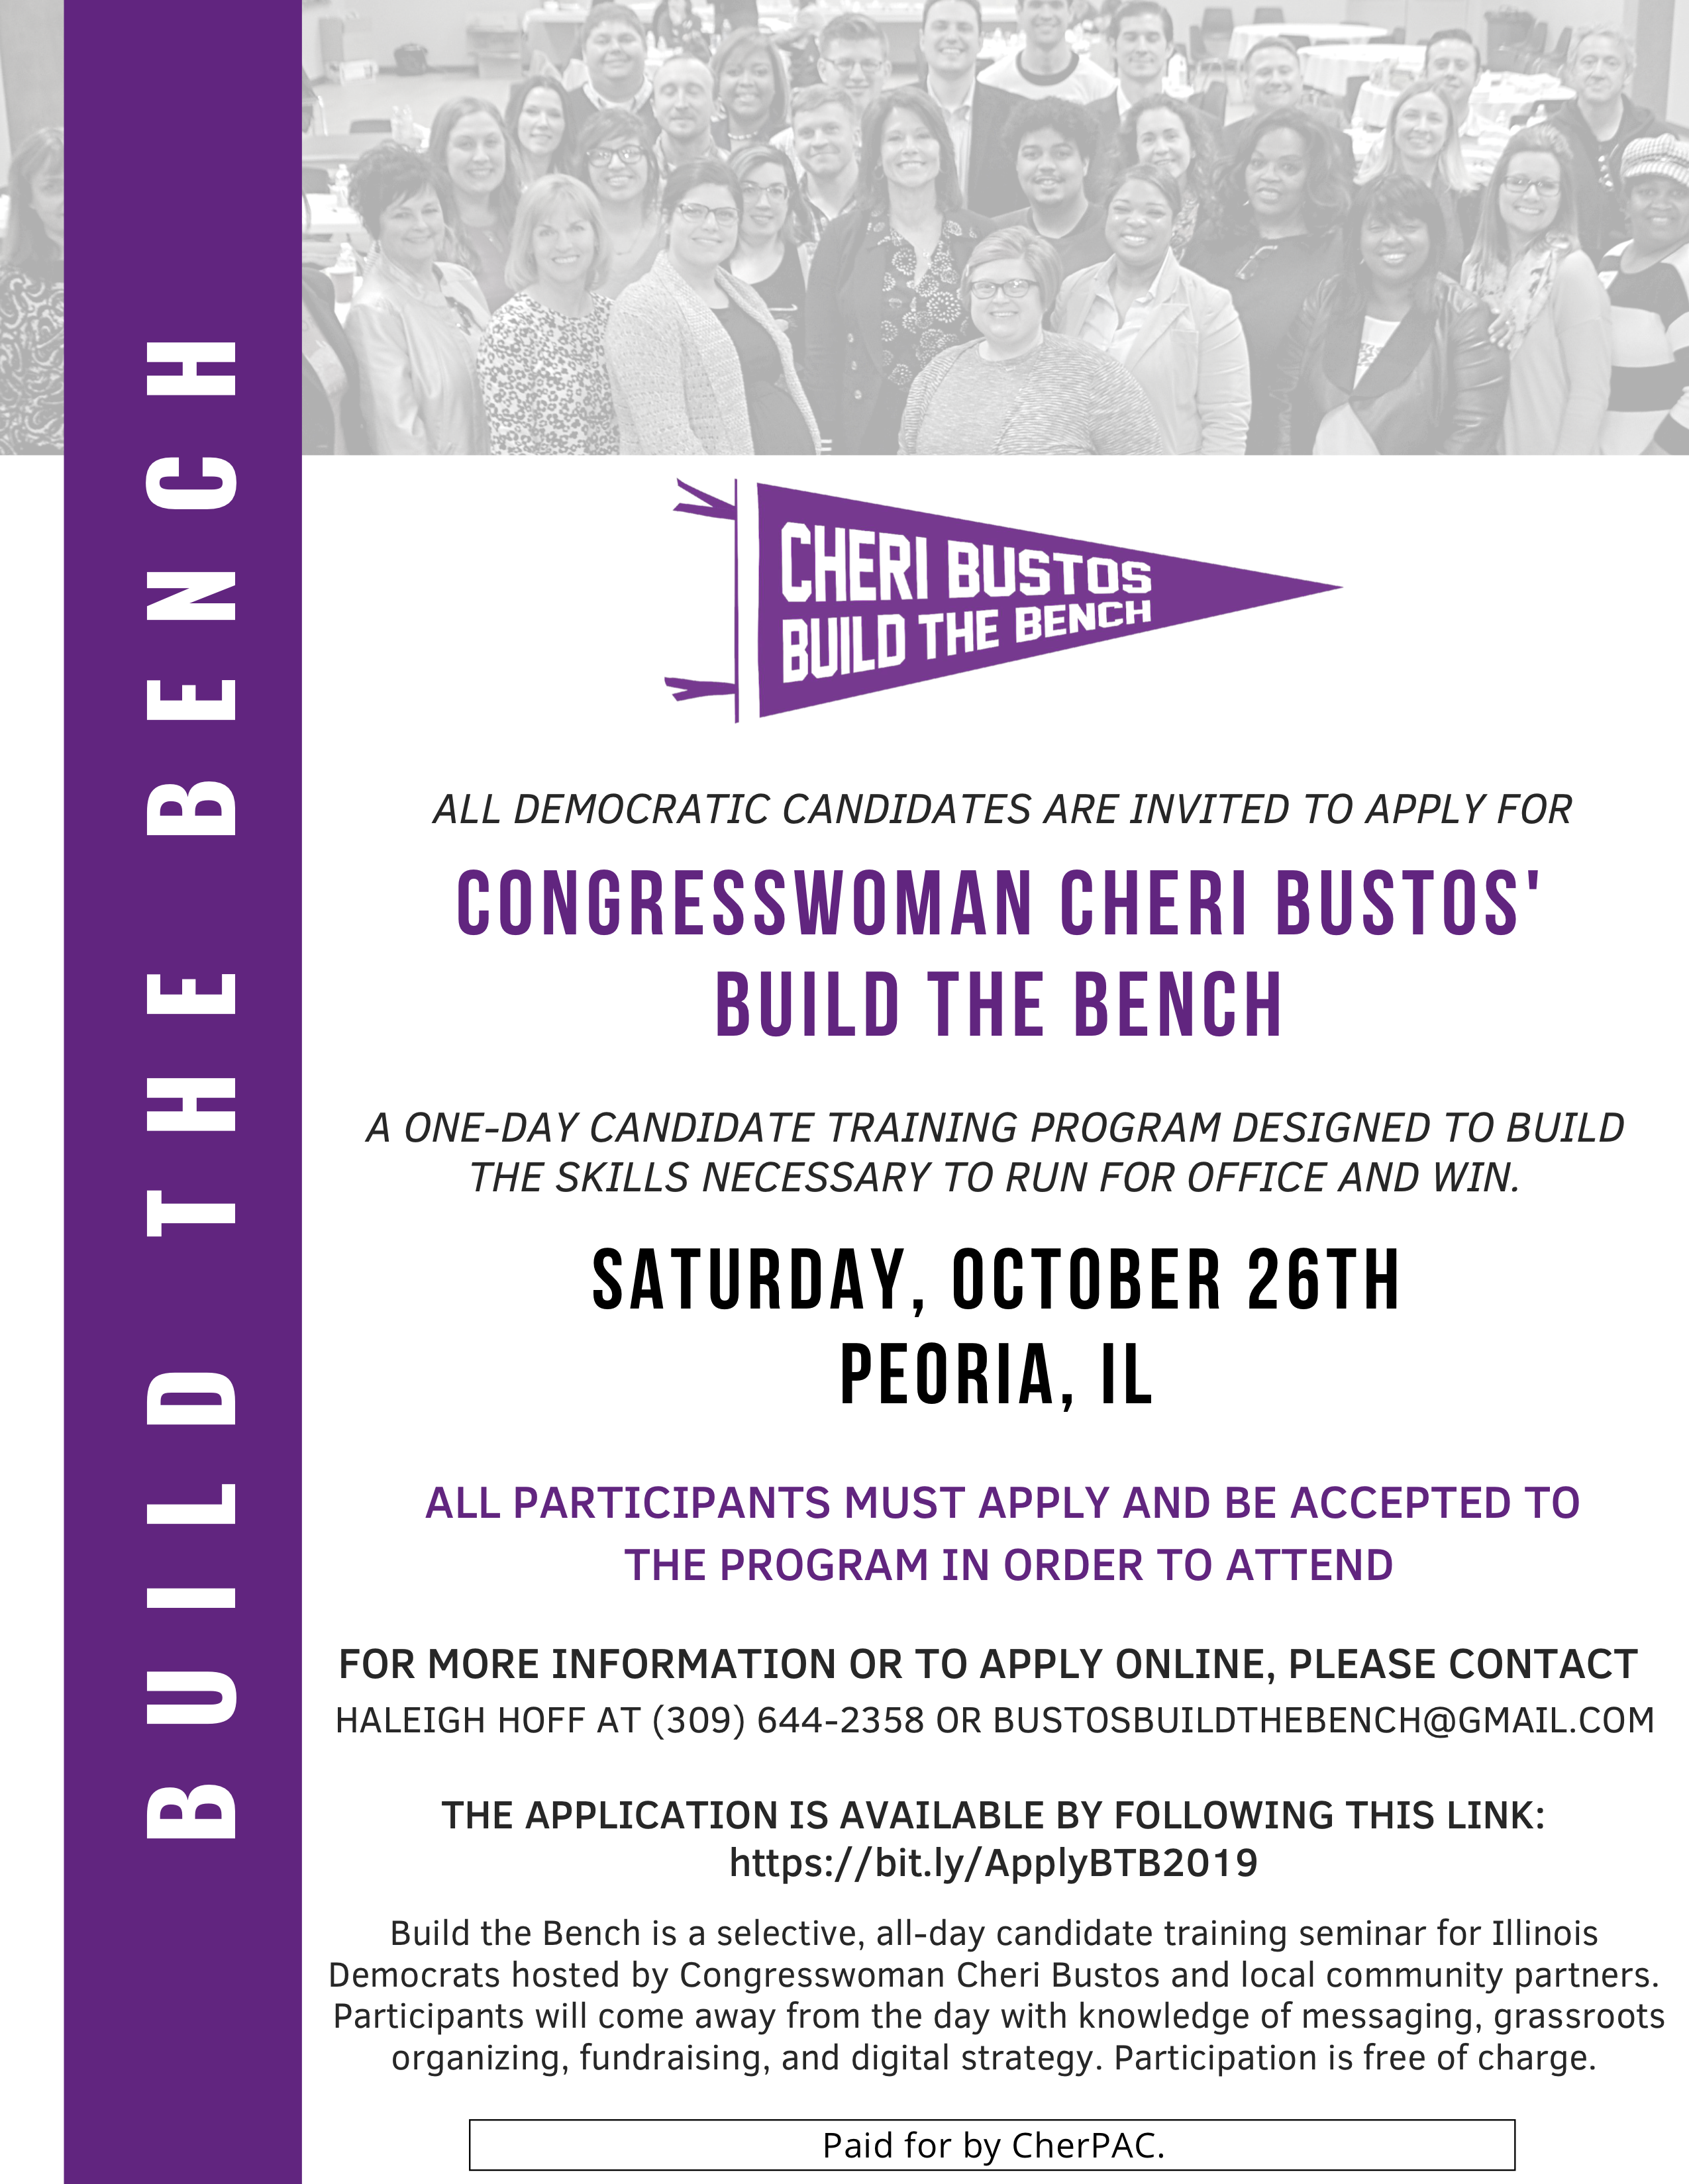 Cheri Bustos Build the Bench